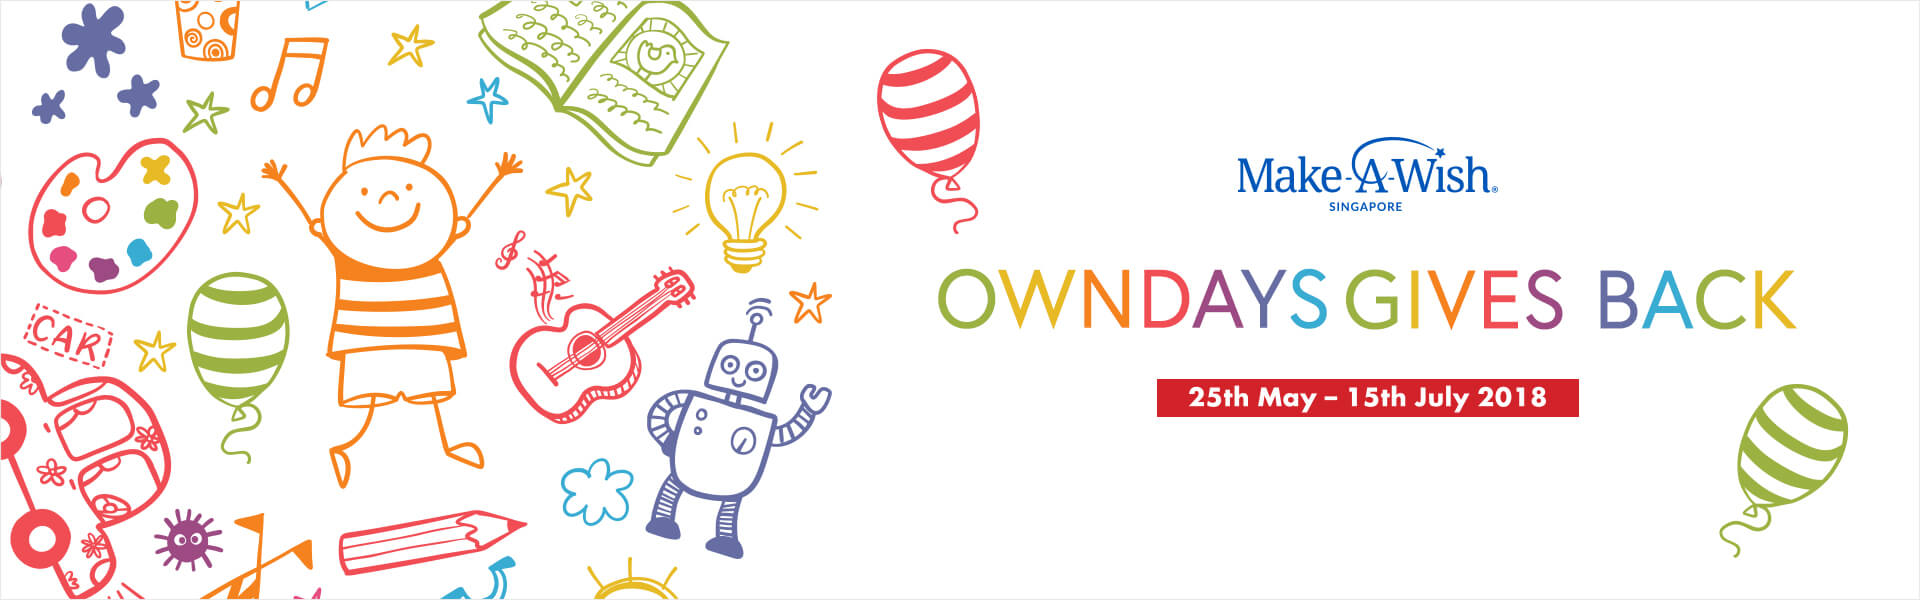 OWNDAYS GIVES BACK